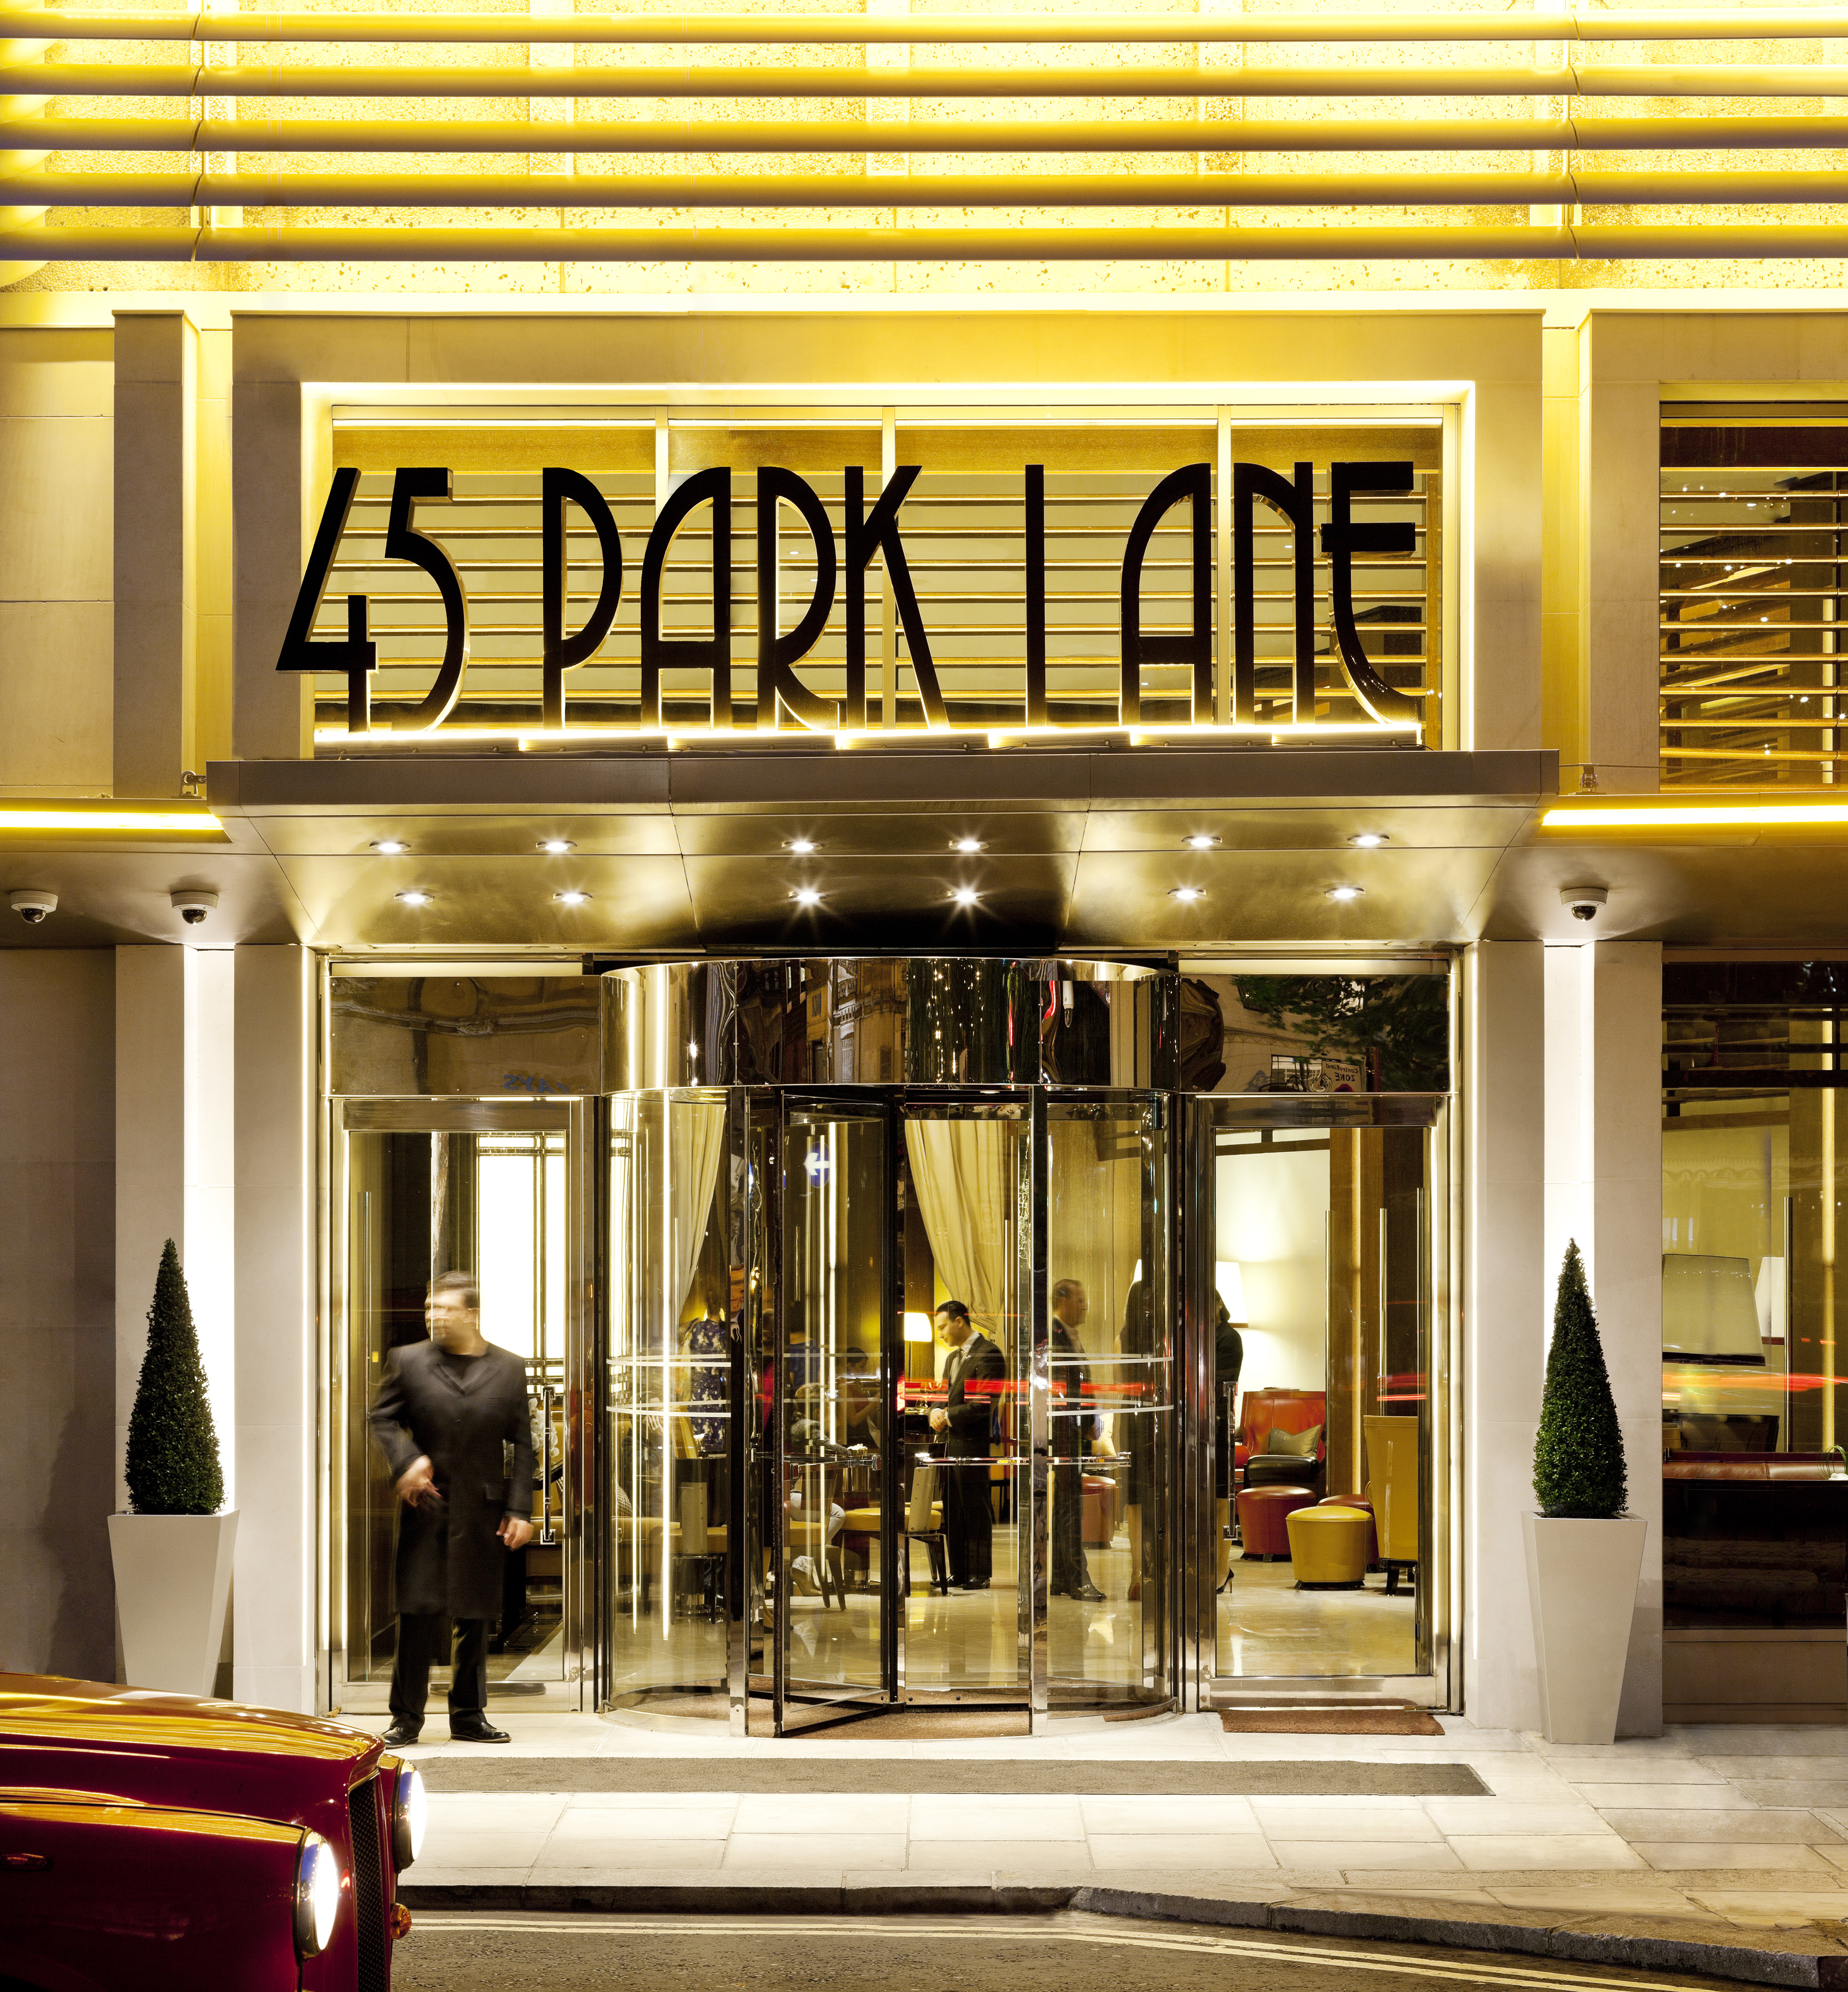 Sunday Night Checking Into 45 Park Lane Dinner At Cut